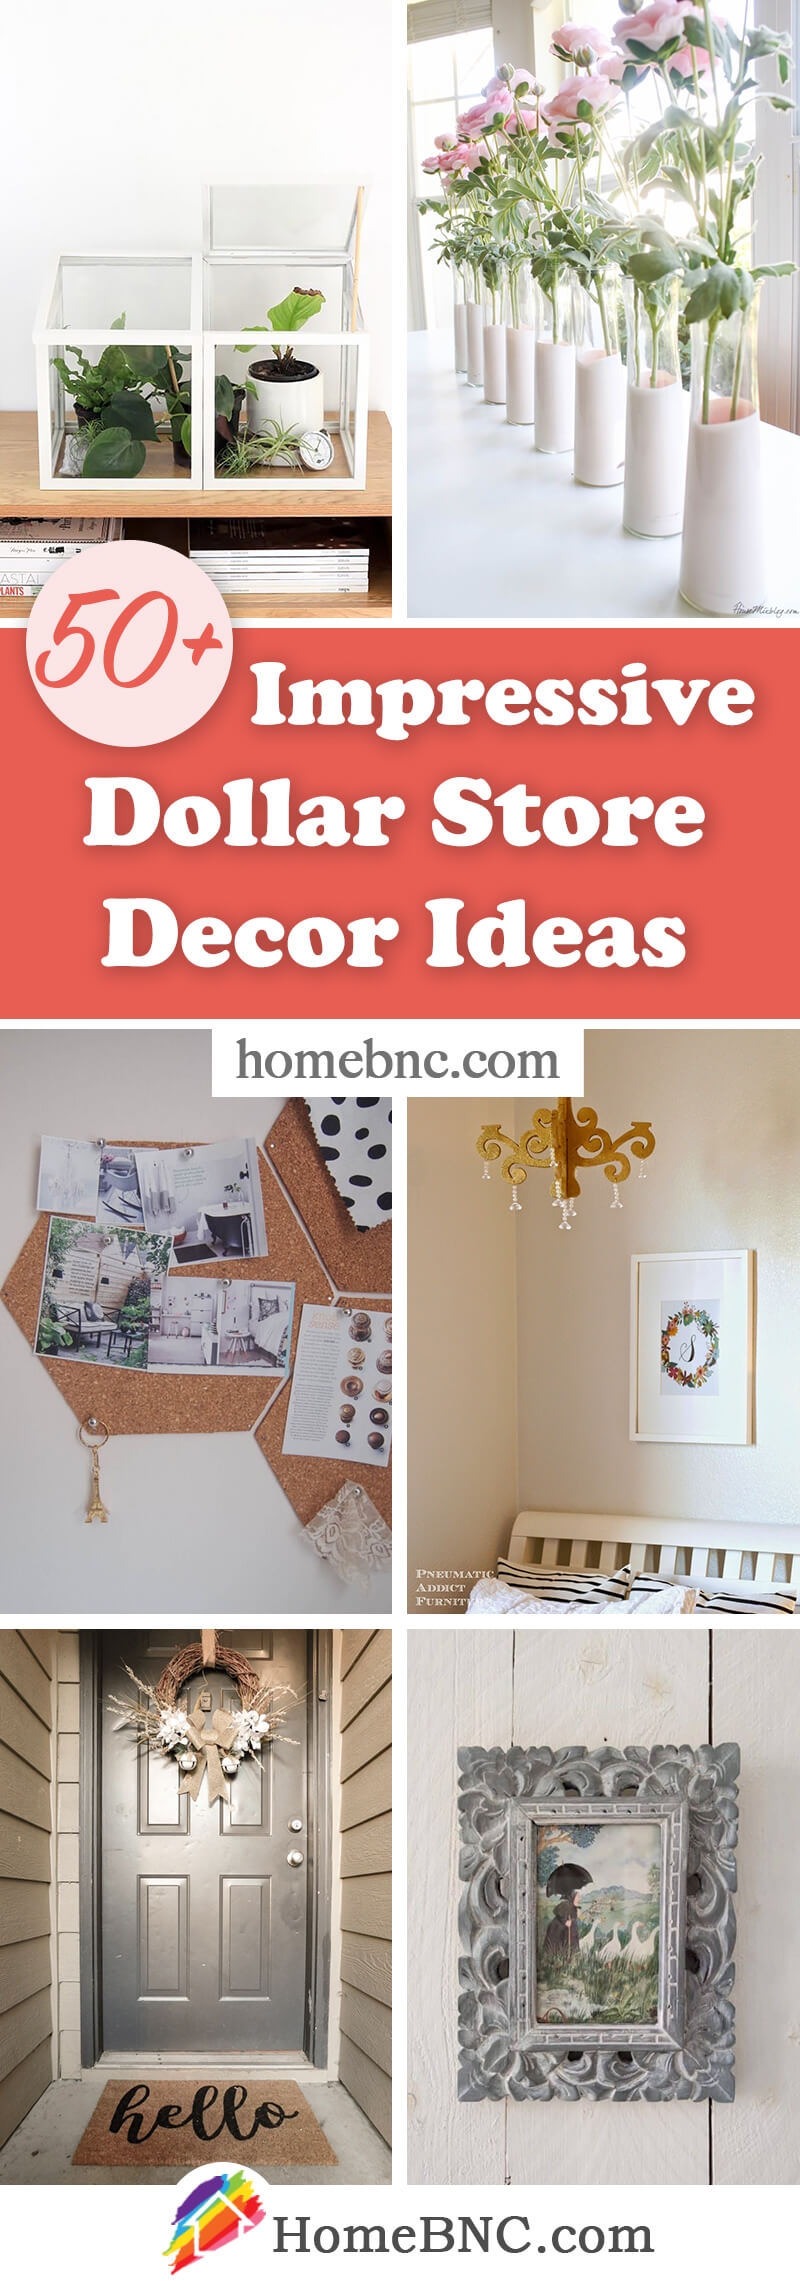 DIY Dollar Store Home Decorations